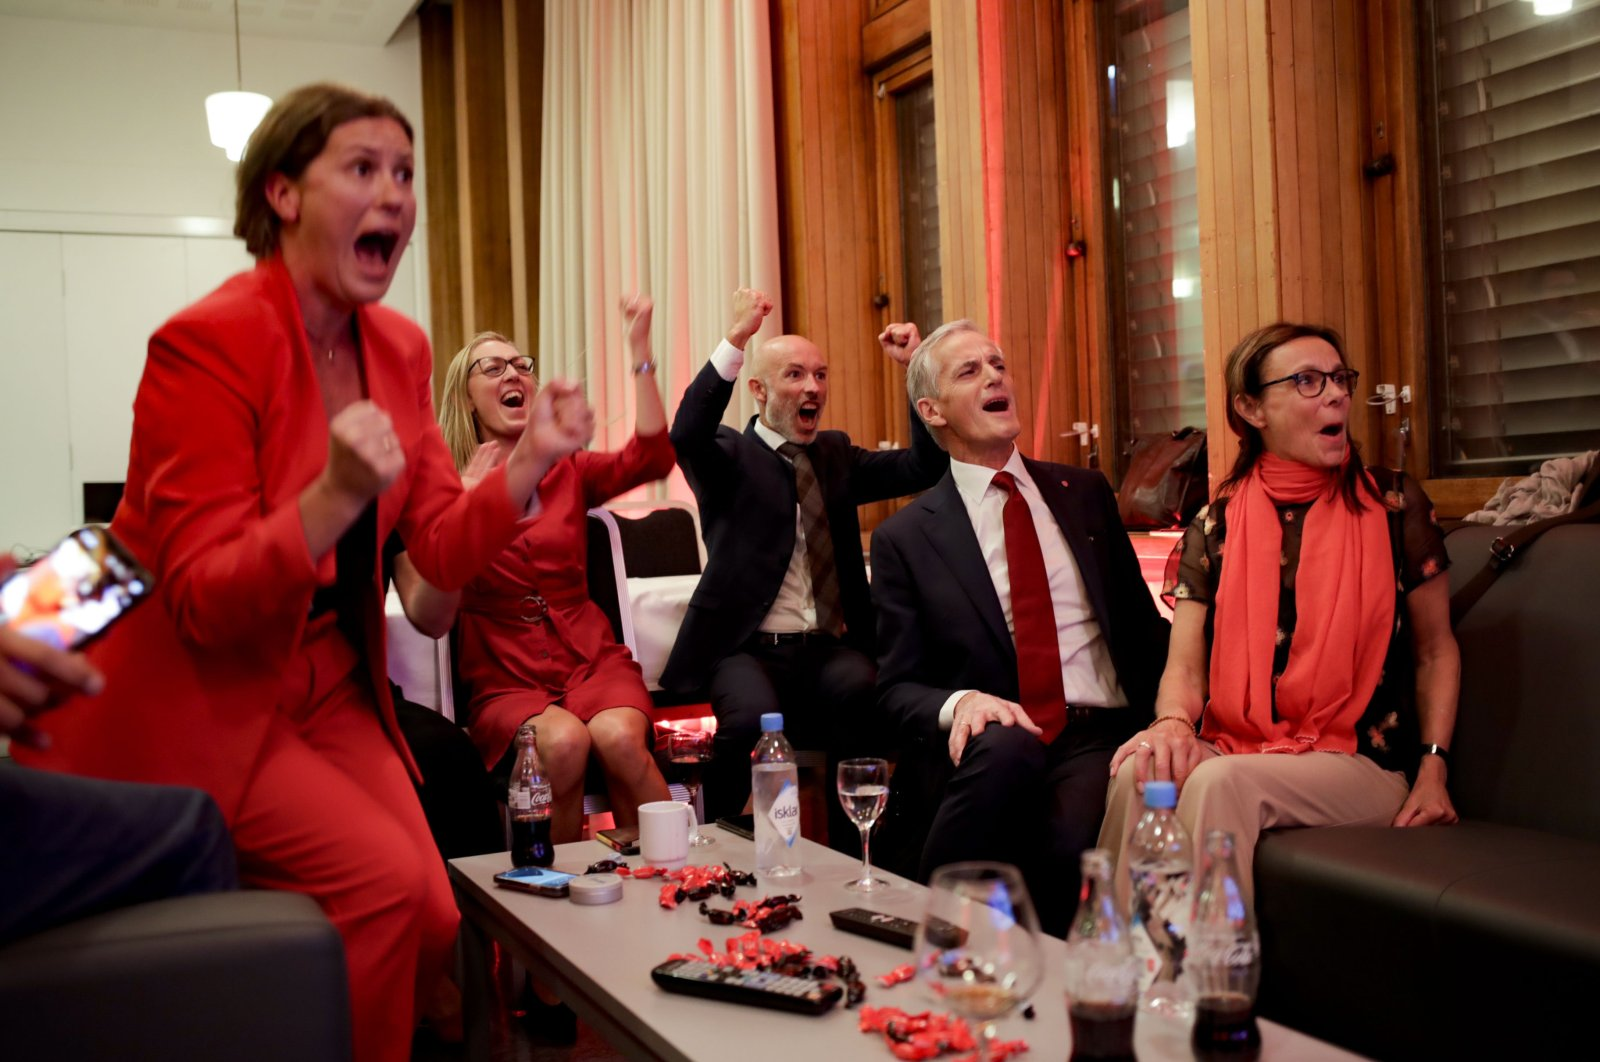 Labour leader Jonas Gahr Store cheers after seeing the exit poll during the Labour Party's election party at Folkets hus in the 2021 Norwegian parliamentary elections, in Oslo, Norway, Sept. 13, 2021. (AP Photo)